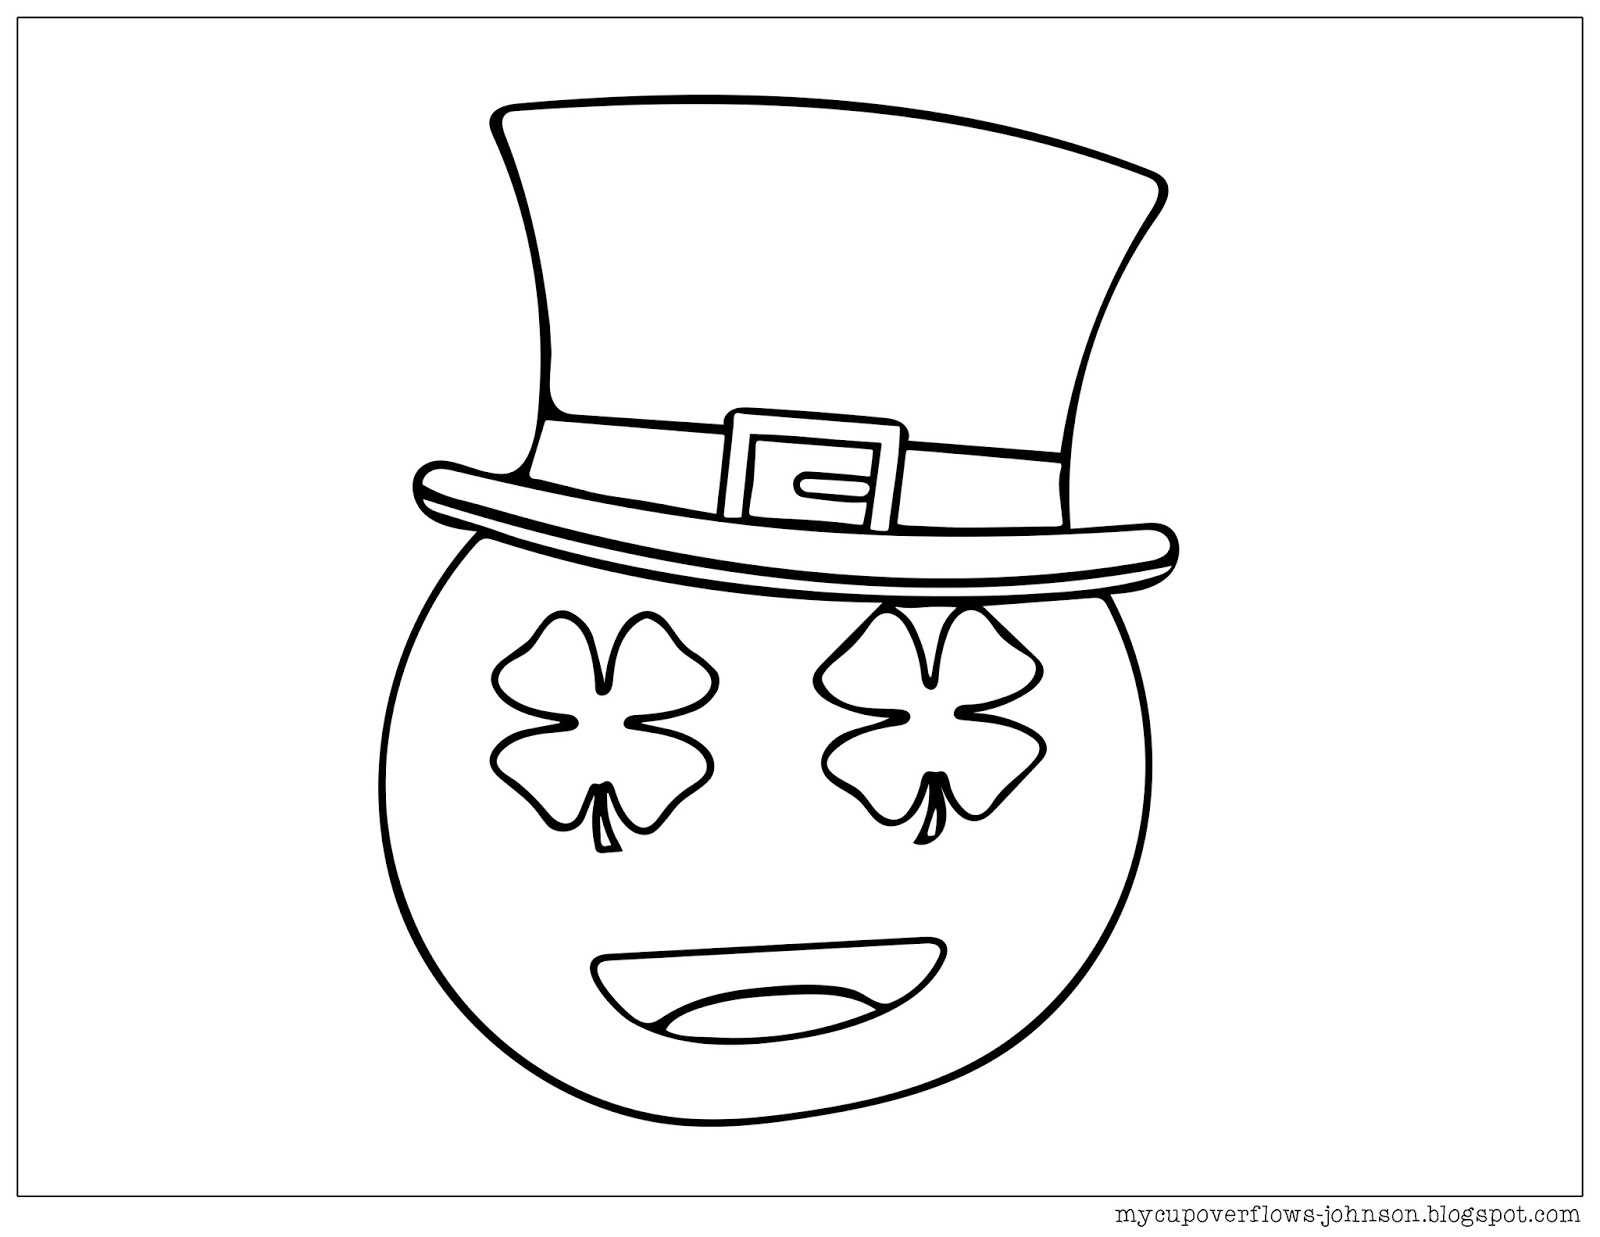 My Cup Overflows St Patrick S Day Coloring Pages